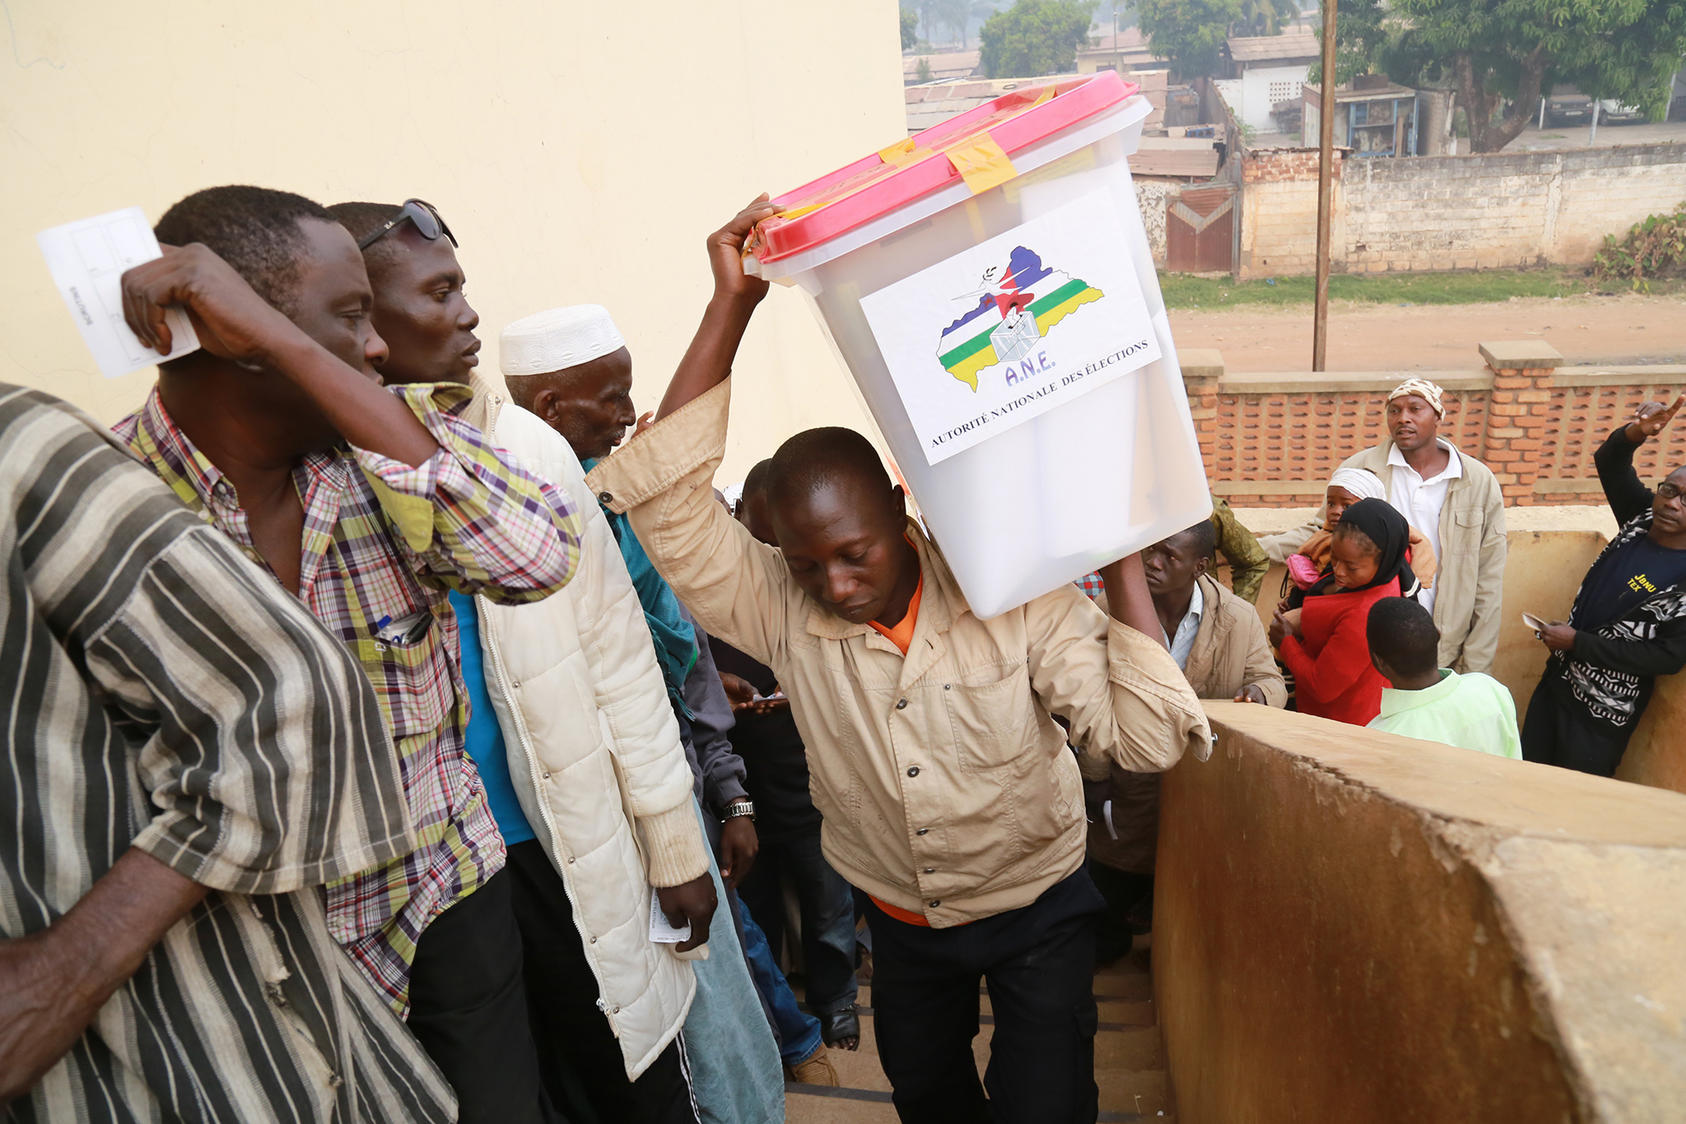 An electoral officer carries election materials into a polling station in Bangui in 2015 as queuing voters look on. (UN Photo/Nektarios Markogiannis)